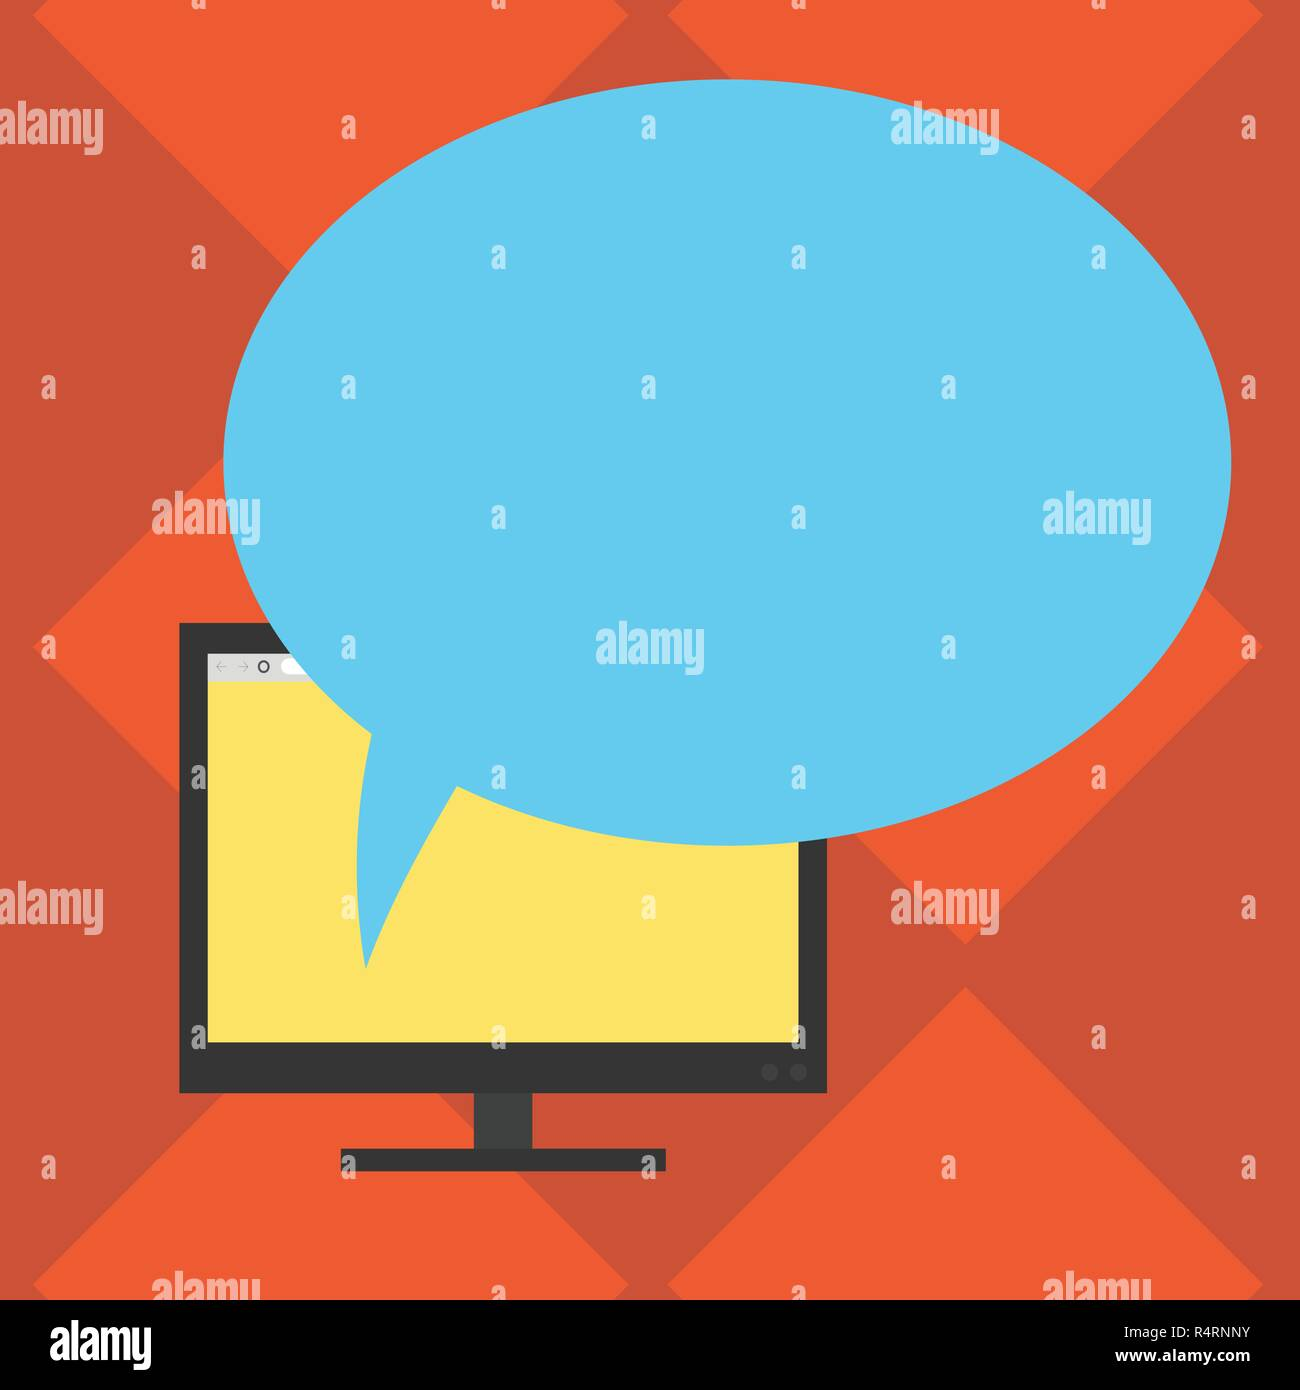 Oval Screen Stock Photos & Oval Screen Stock Images - Alamy